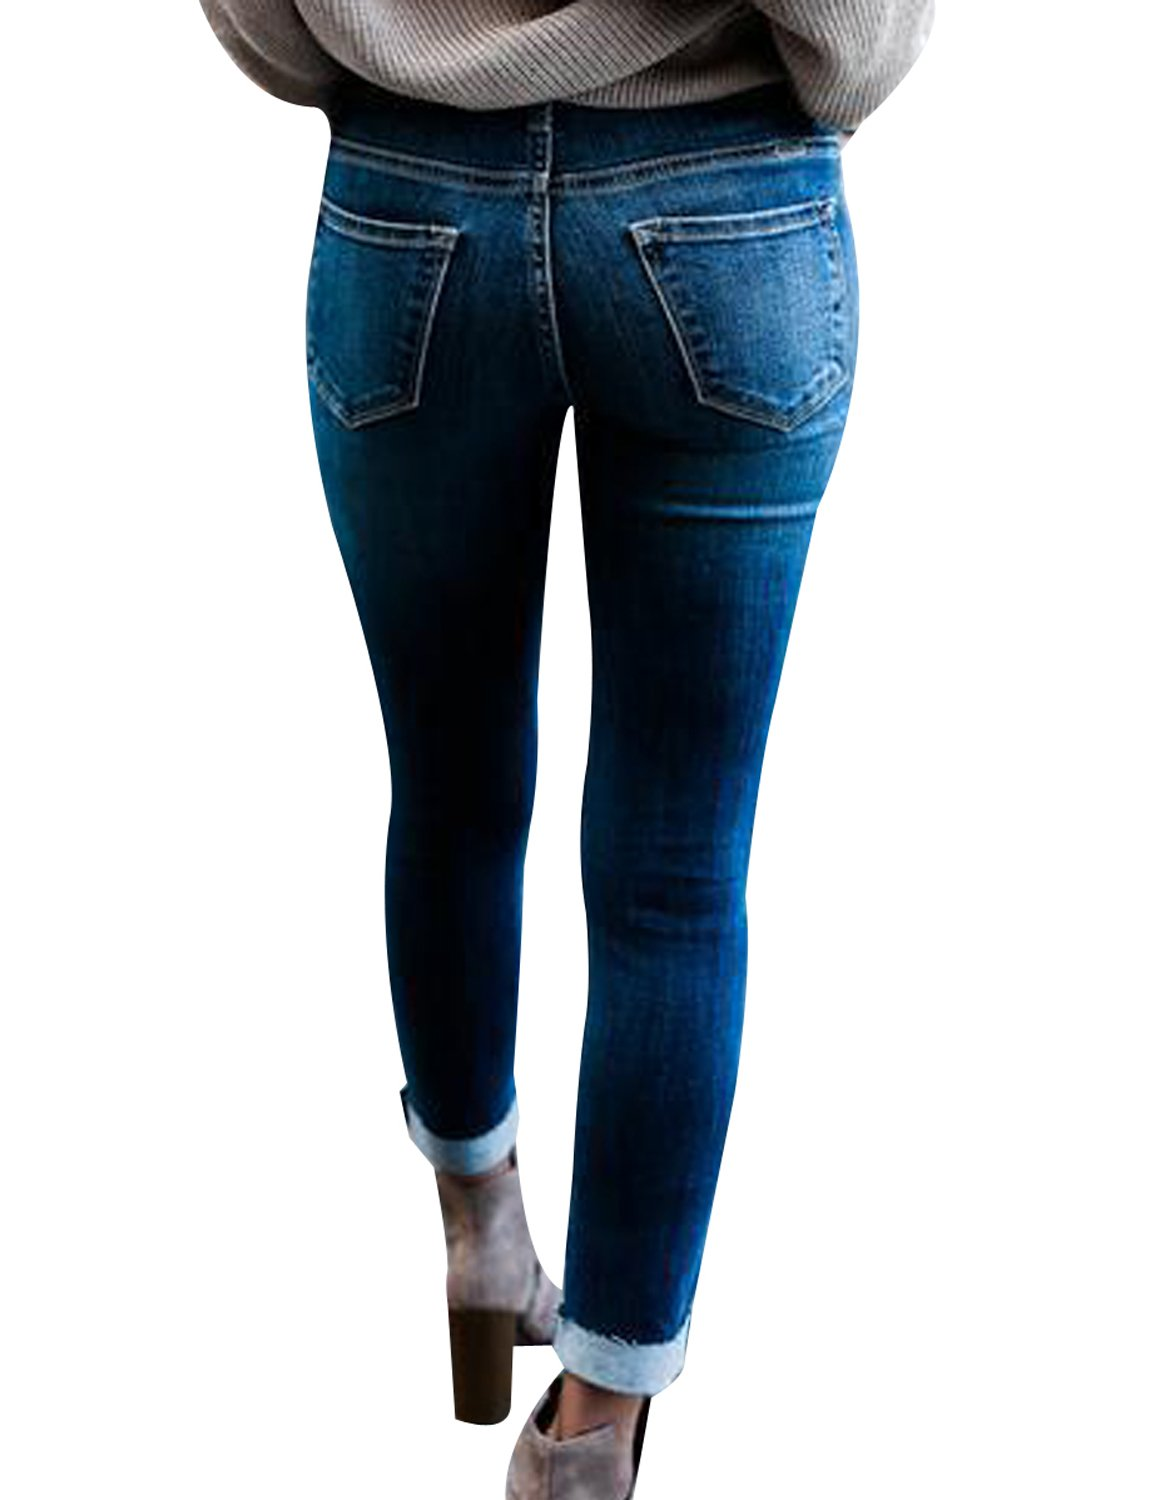 Ladies High Waisted Blue Womens Skinny Fit Jeans Stretch Denim Jegging Size 8-14